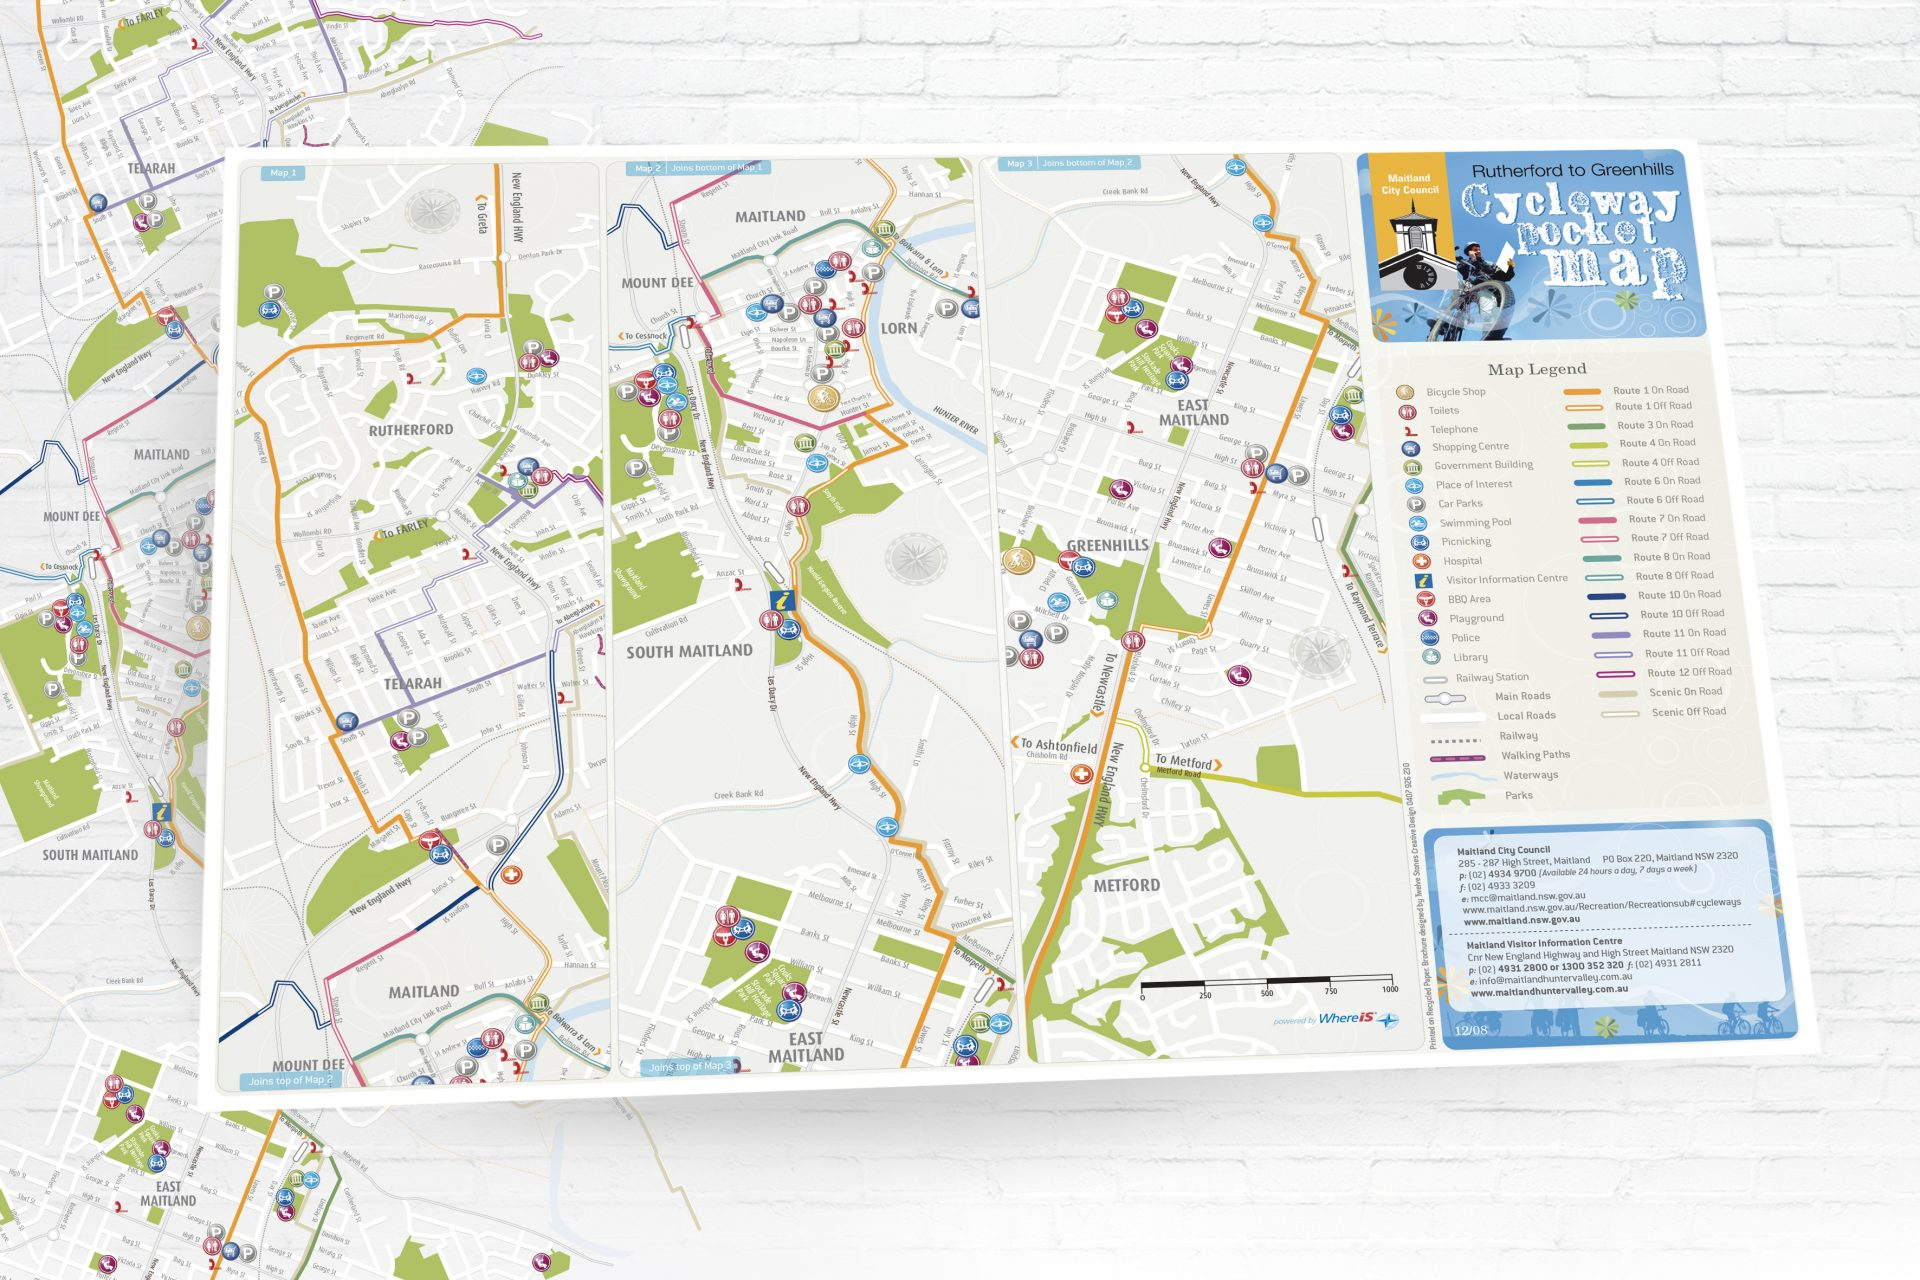 CycleWays Pocket Map for Cessnock City Council